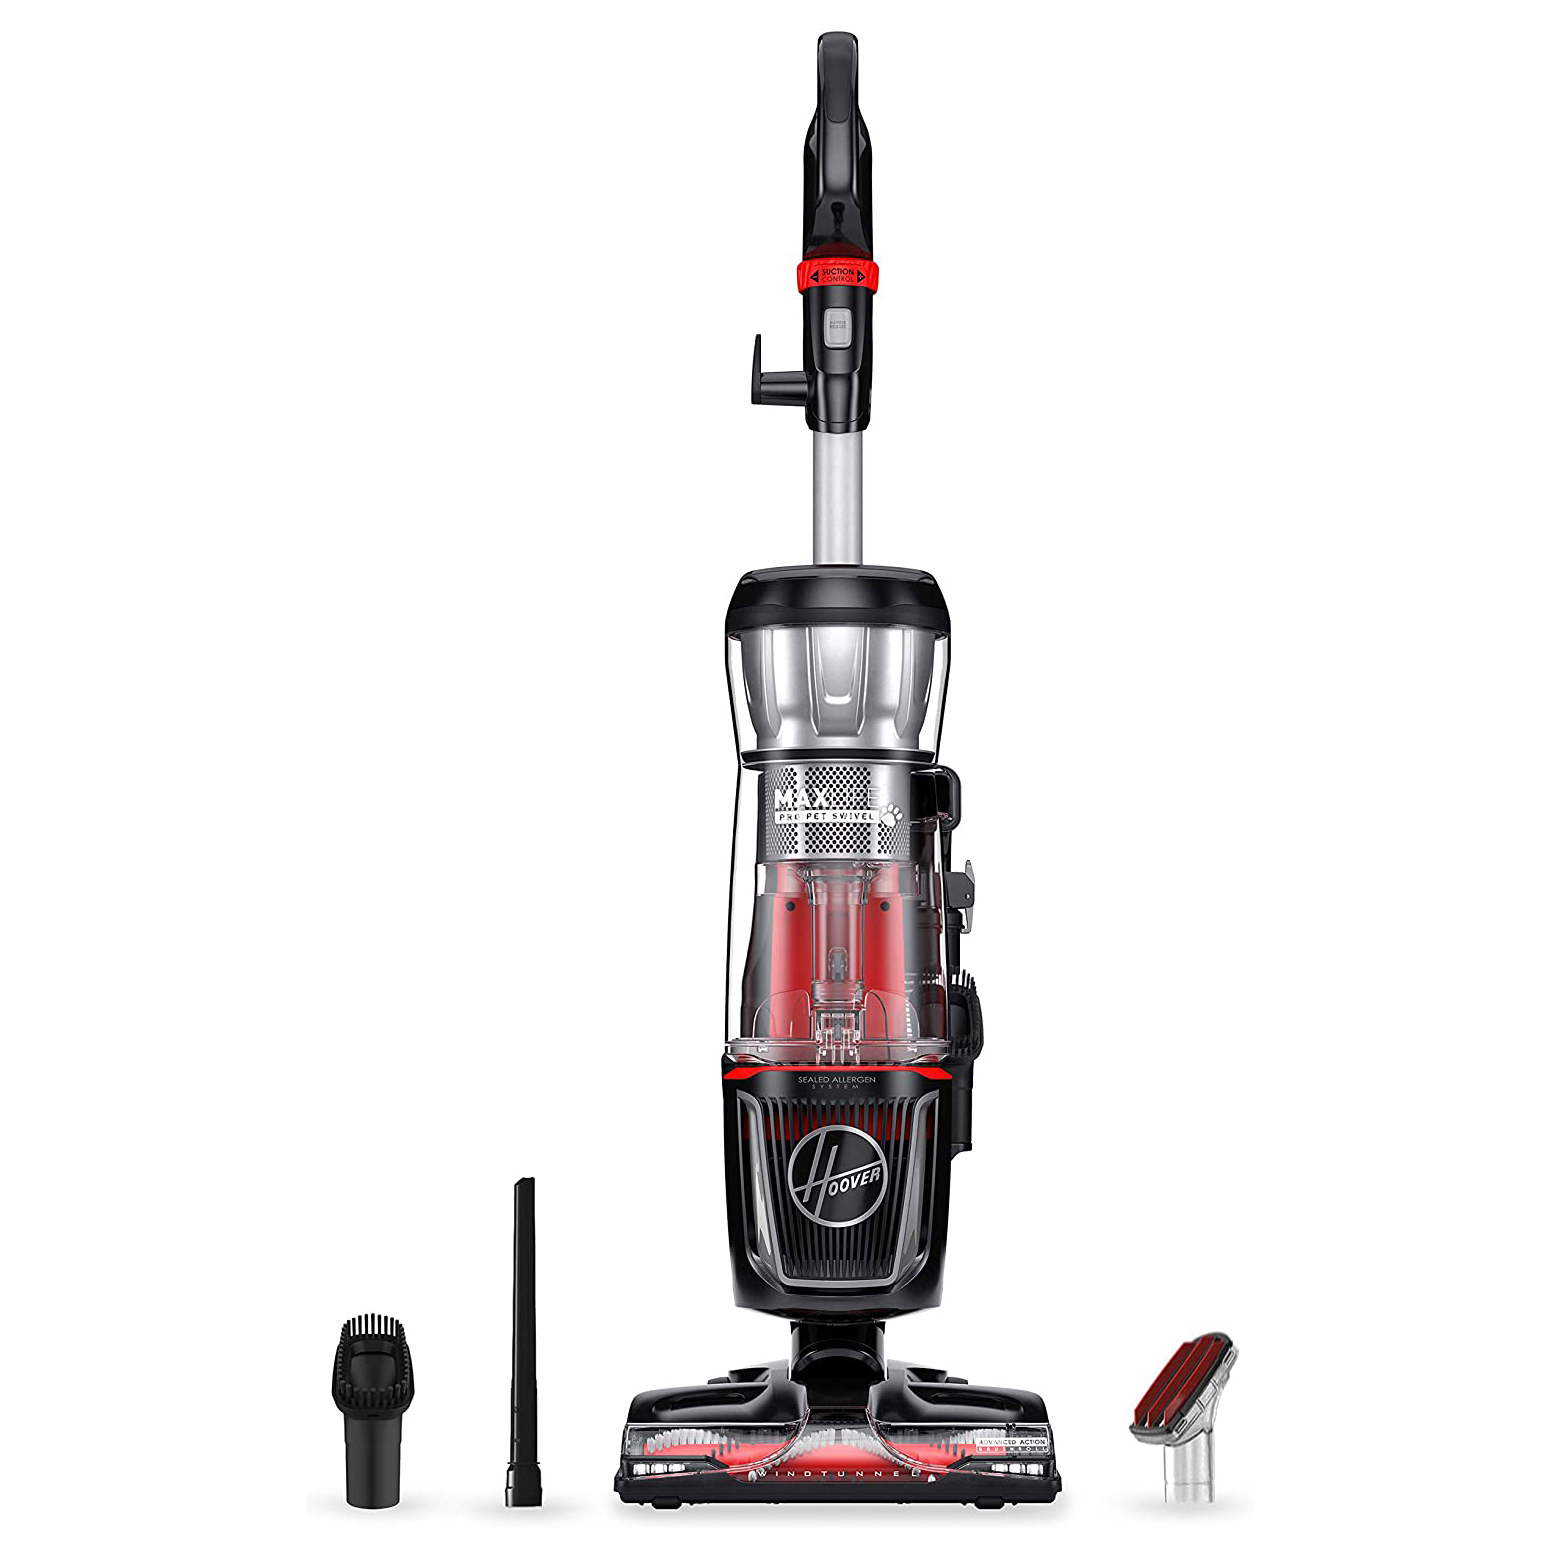 Hoover MAXLife Pro Pet Swivel HEPA Media Vacuum Cleaner, Bagless Upright for Pets Hair and Home